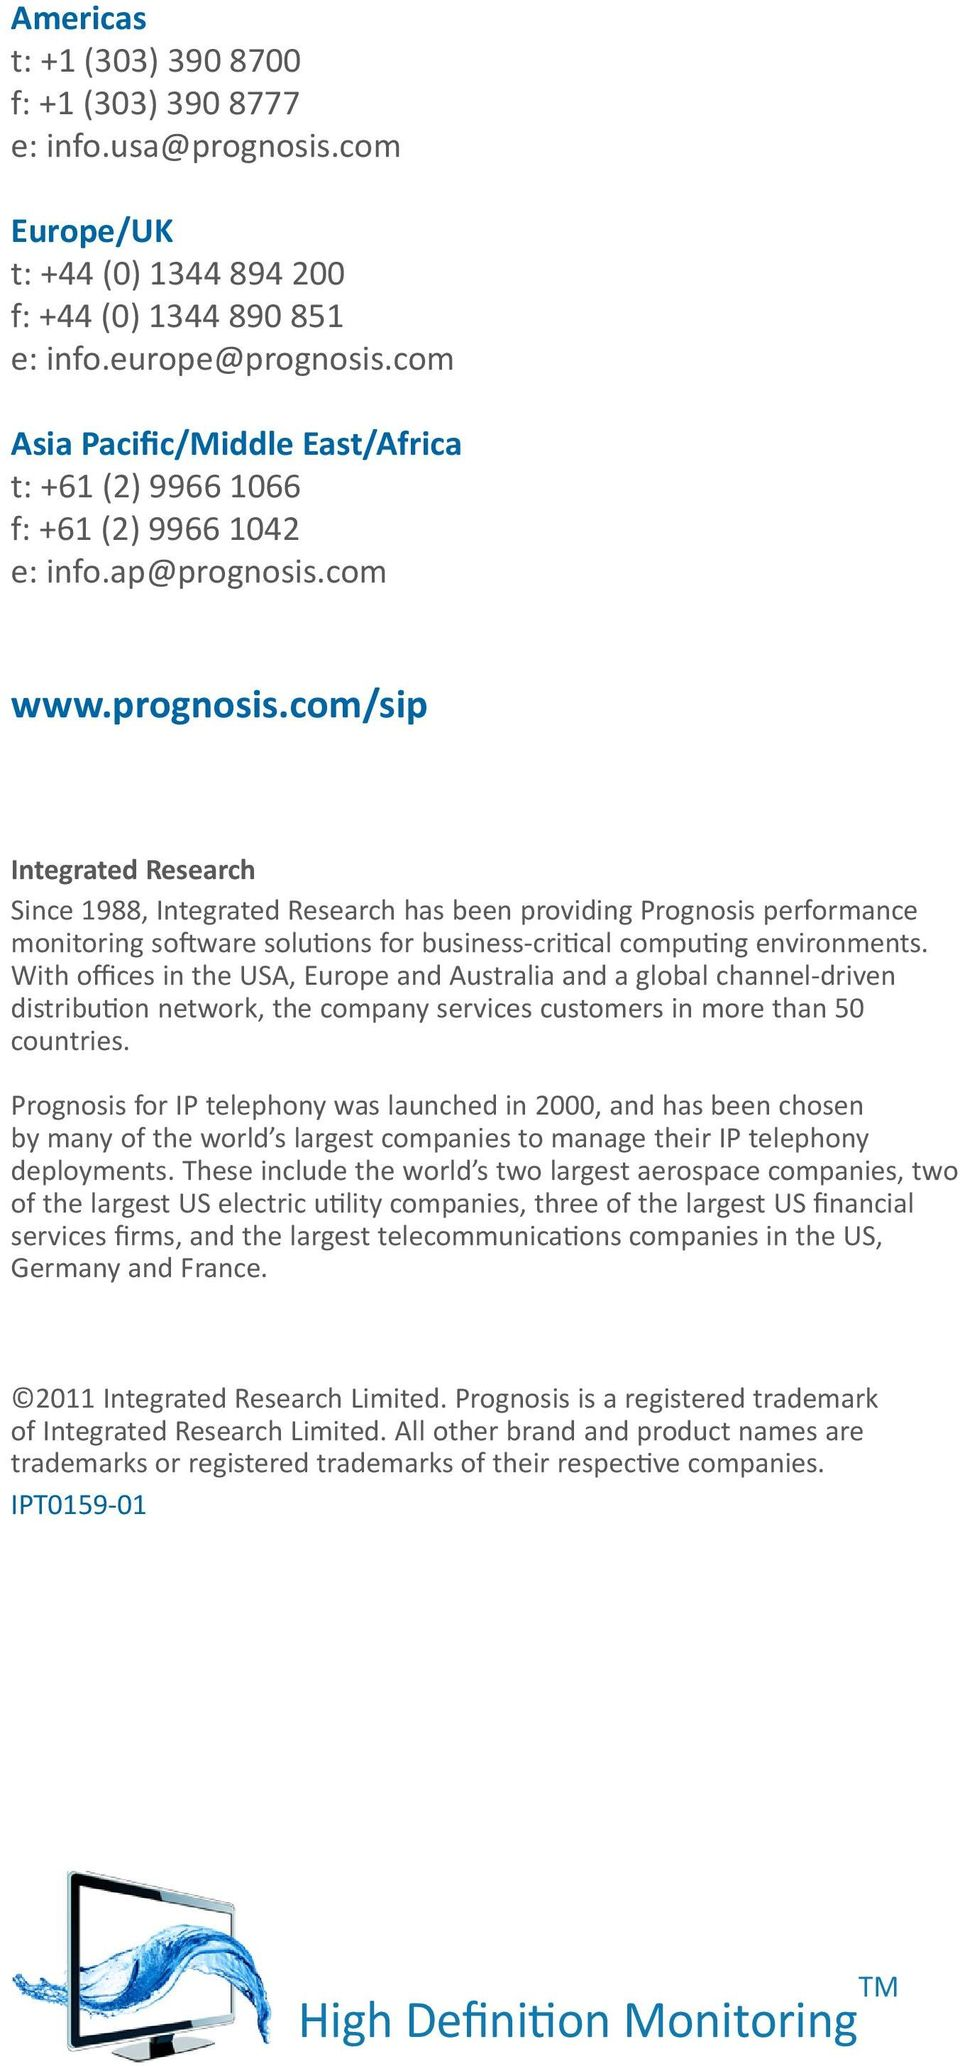 com www.prognosis.com/sip Integrated Research Since 1988, Integrated Research has been providing Prognosis performance monitoring software solutions for business-critical computing environments.